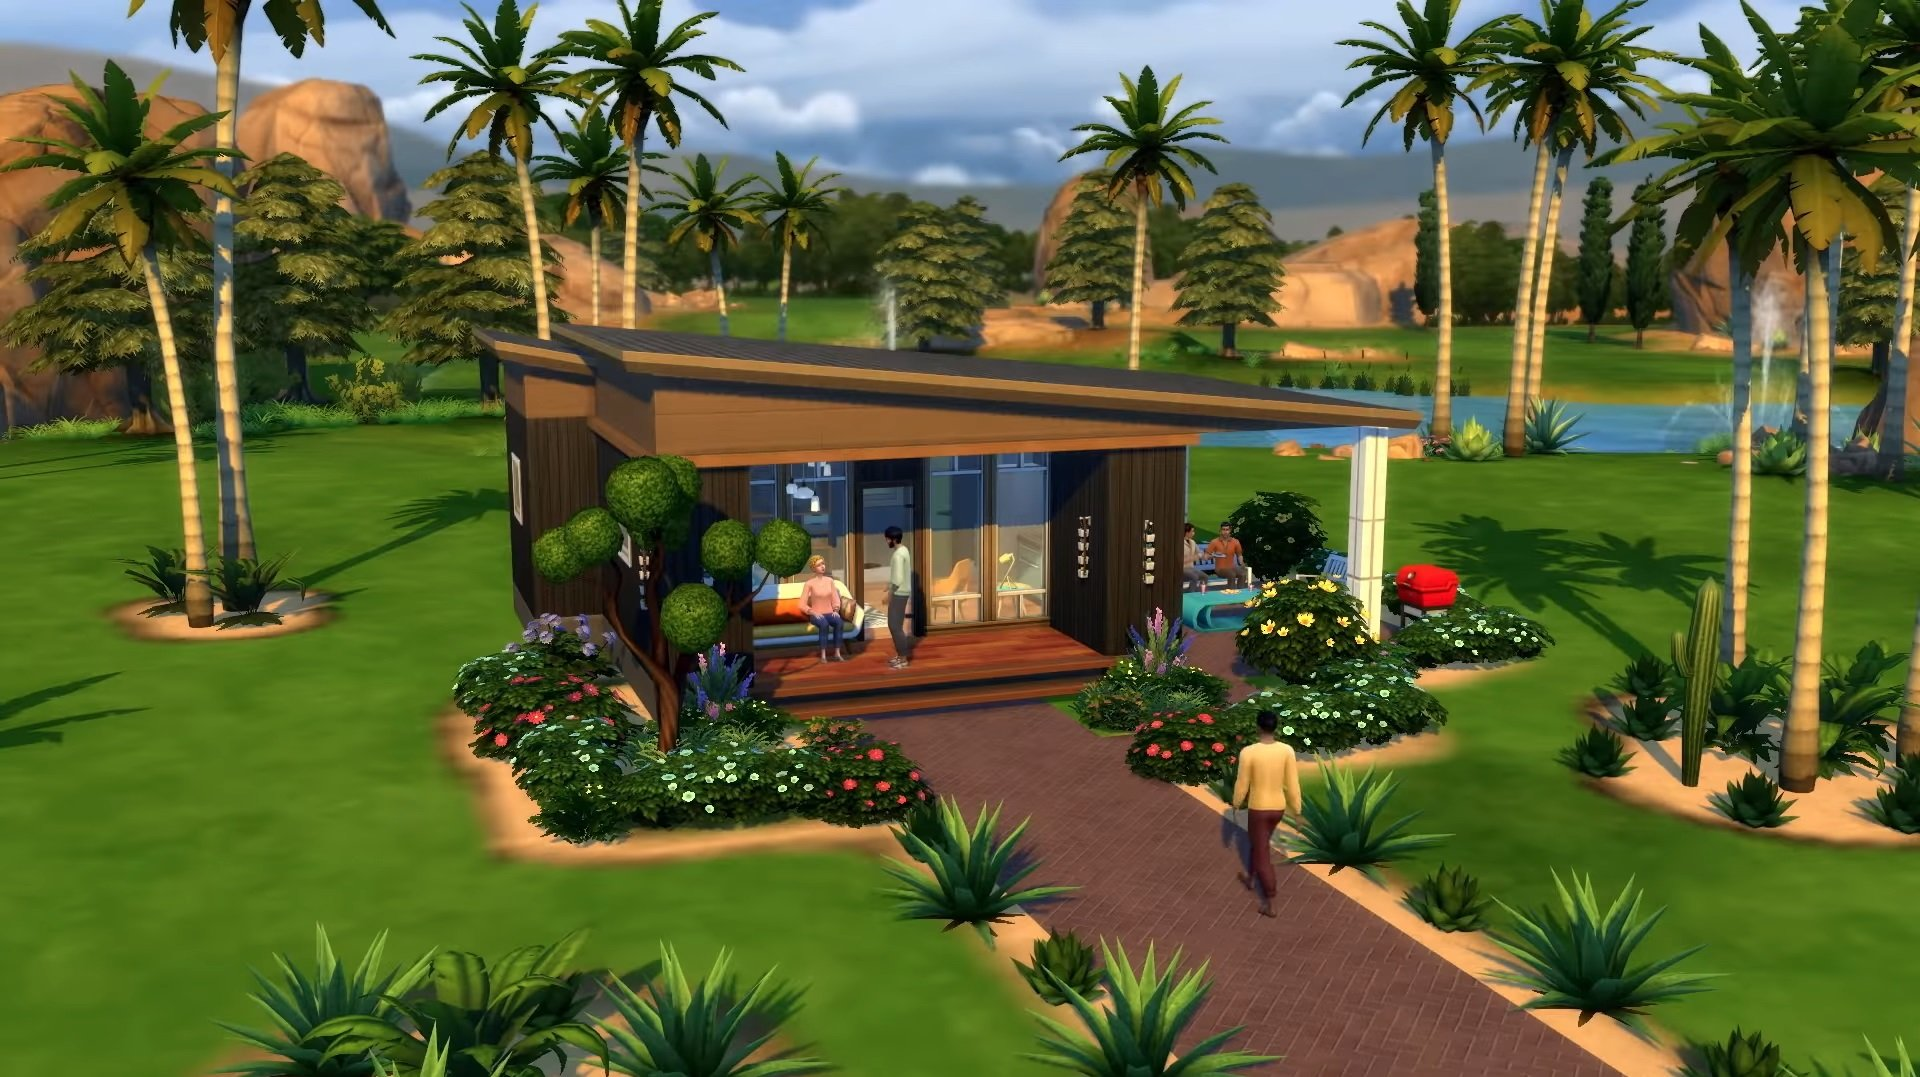 Tiny homes coming to Sims 4 in new DLC